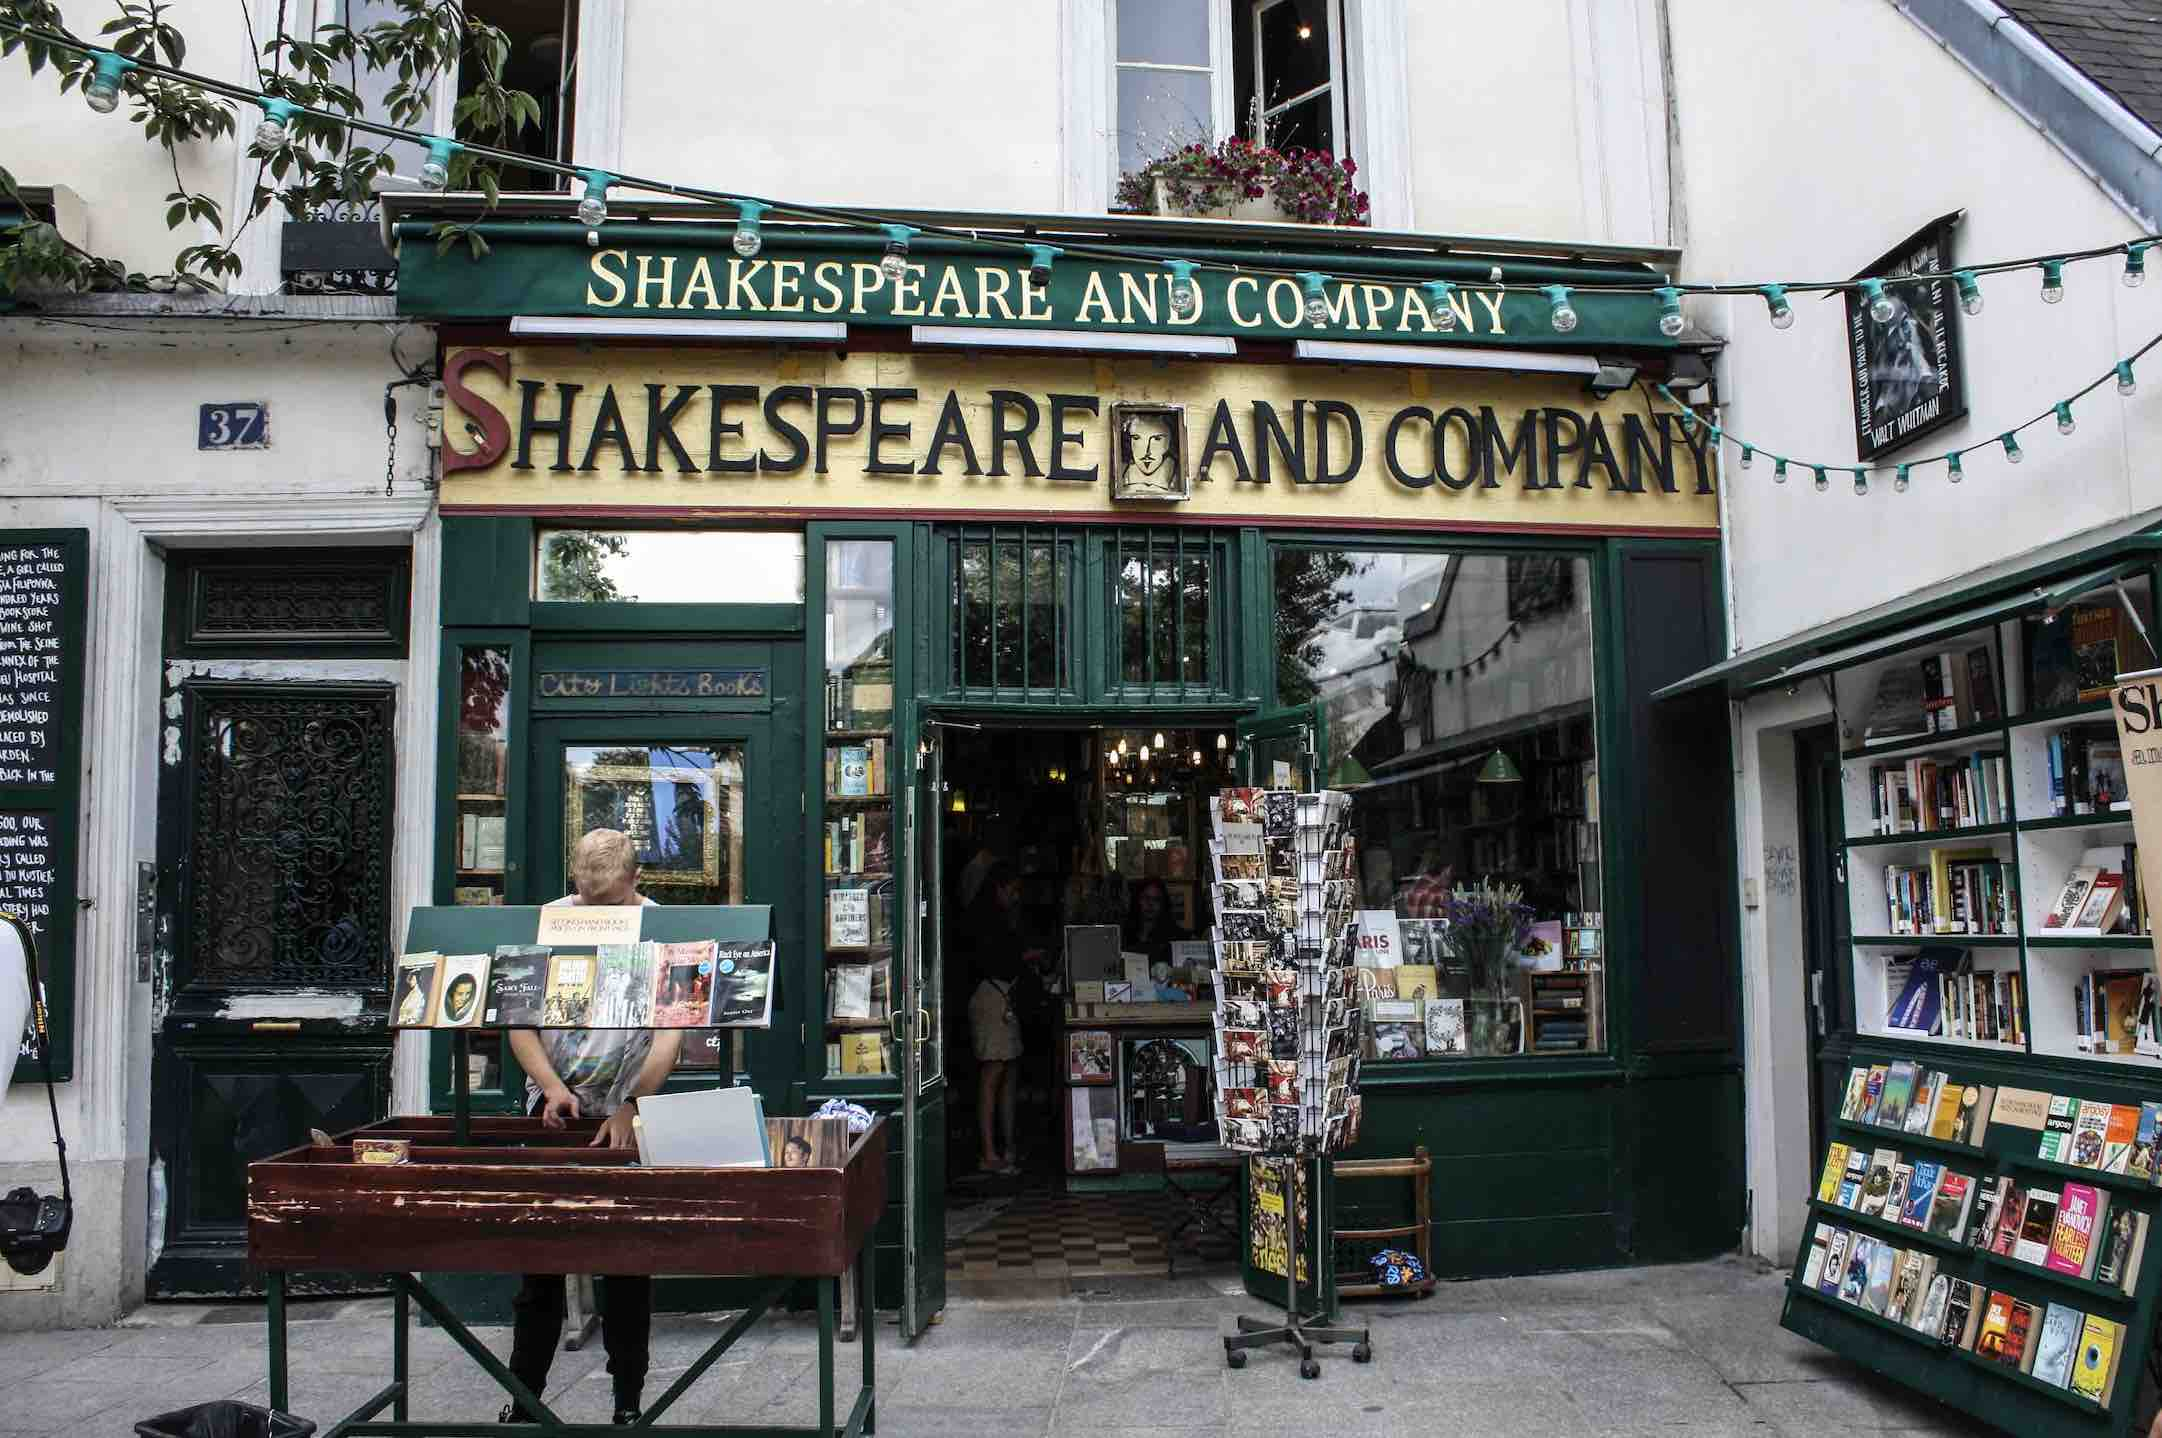 The Shakespeare and Company Bookstore exterior is one of the top things to do in Paris for book lovers to visit